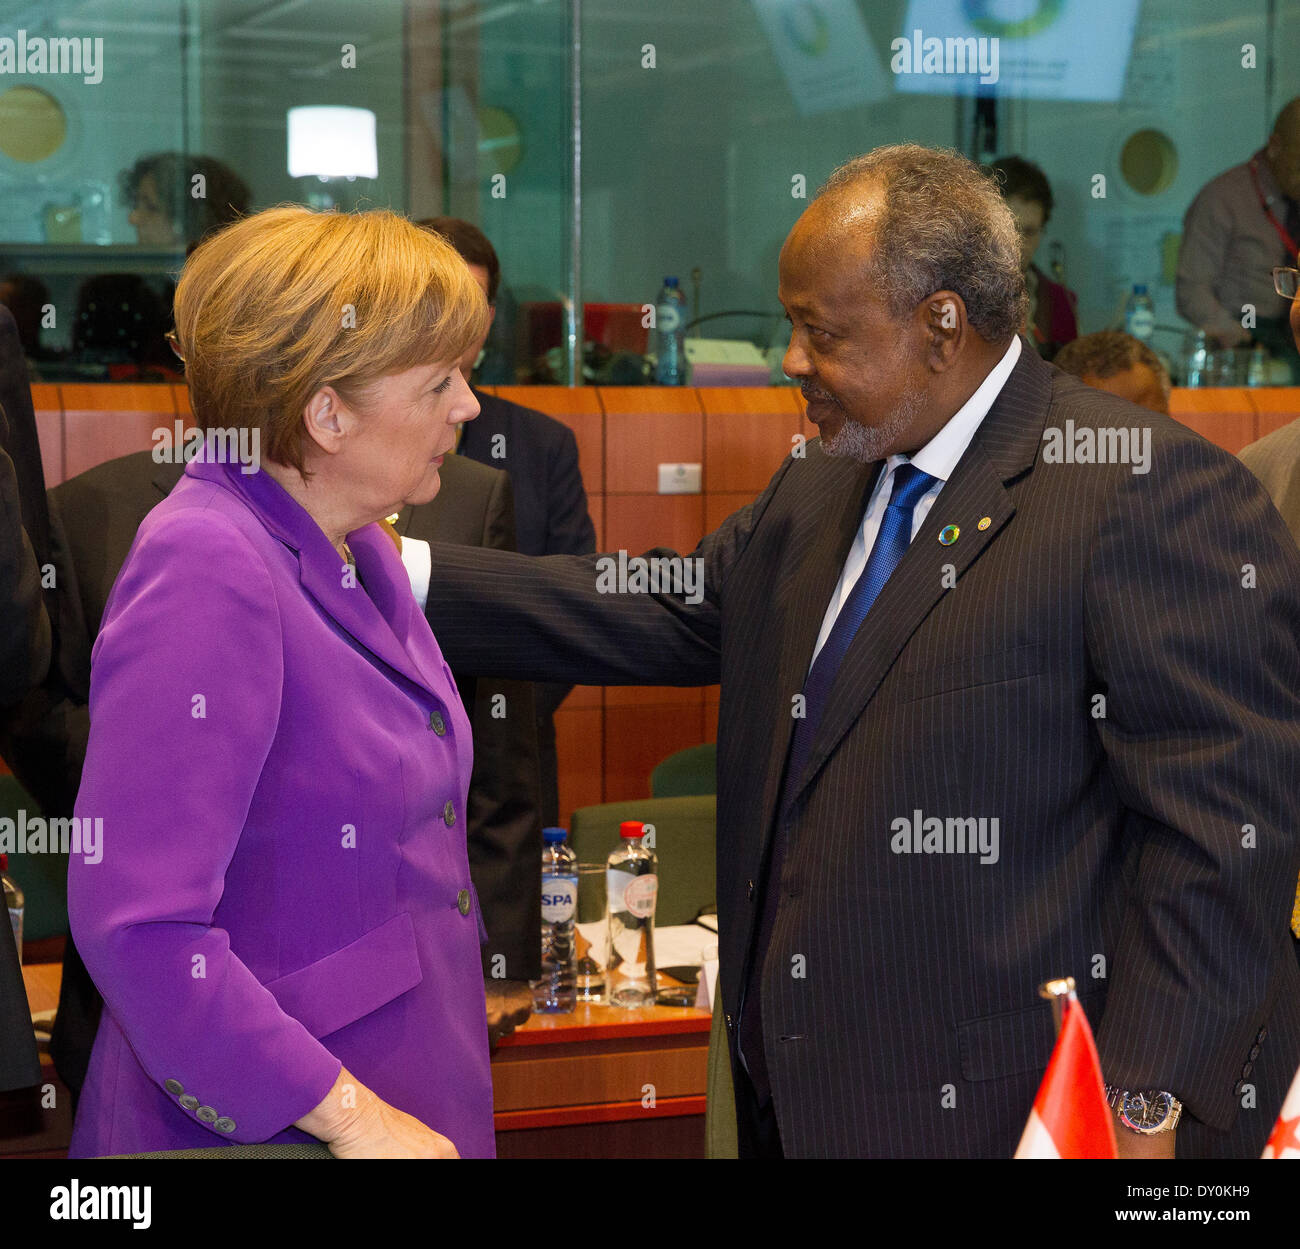 Brussels, Belgium. 2nd April 2014. Pictured during the EU-Africa Summit held in Brussels were, left to right, German Chancellor Angela Merkel with President Ismail Omar Guelleh of Djibouti.  Credit:  Peter Cavanagh/Alamy Live News - Stock Image